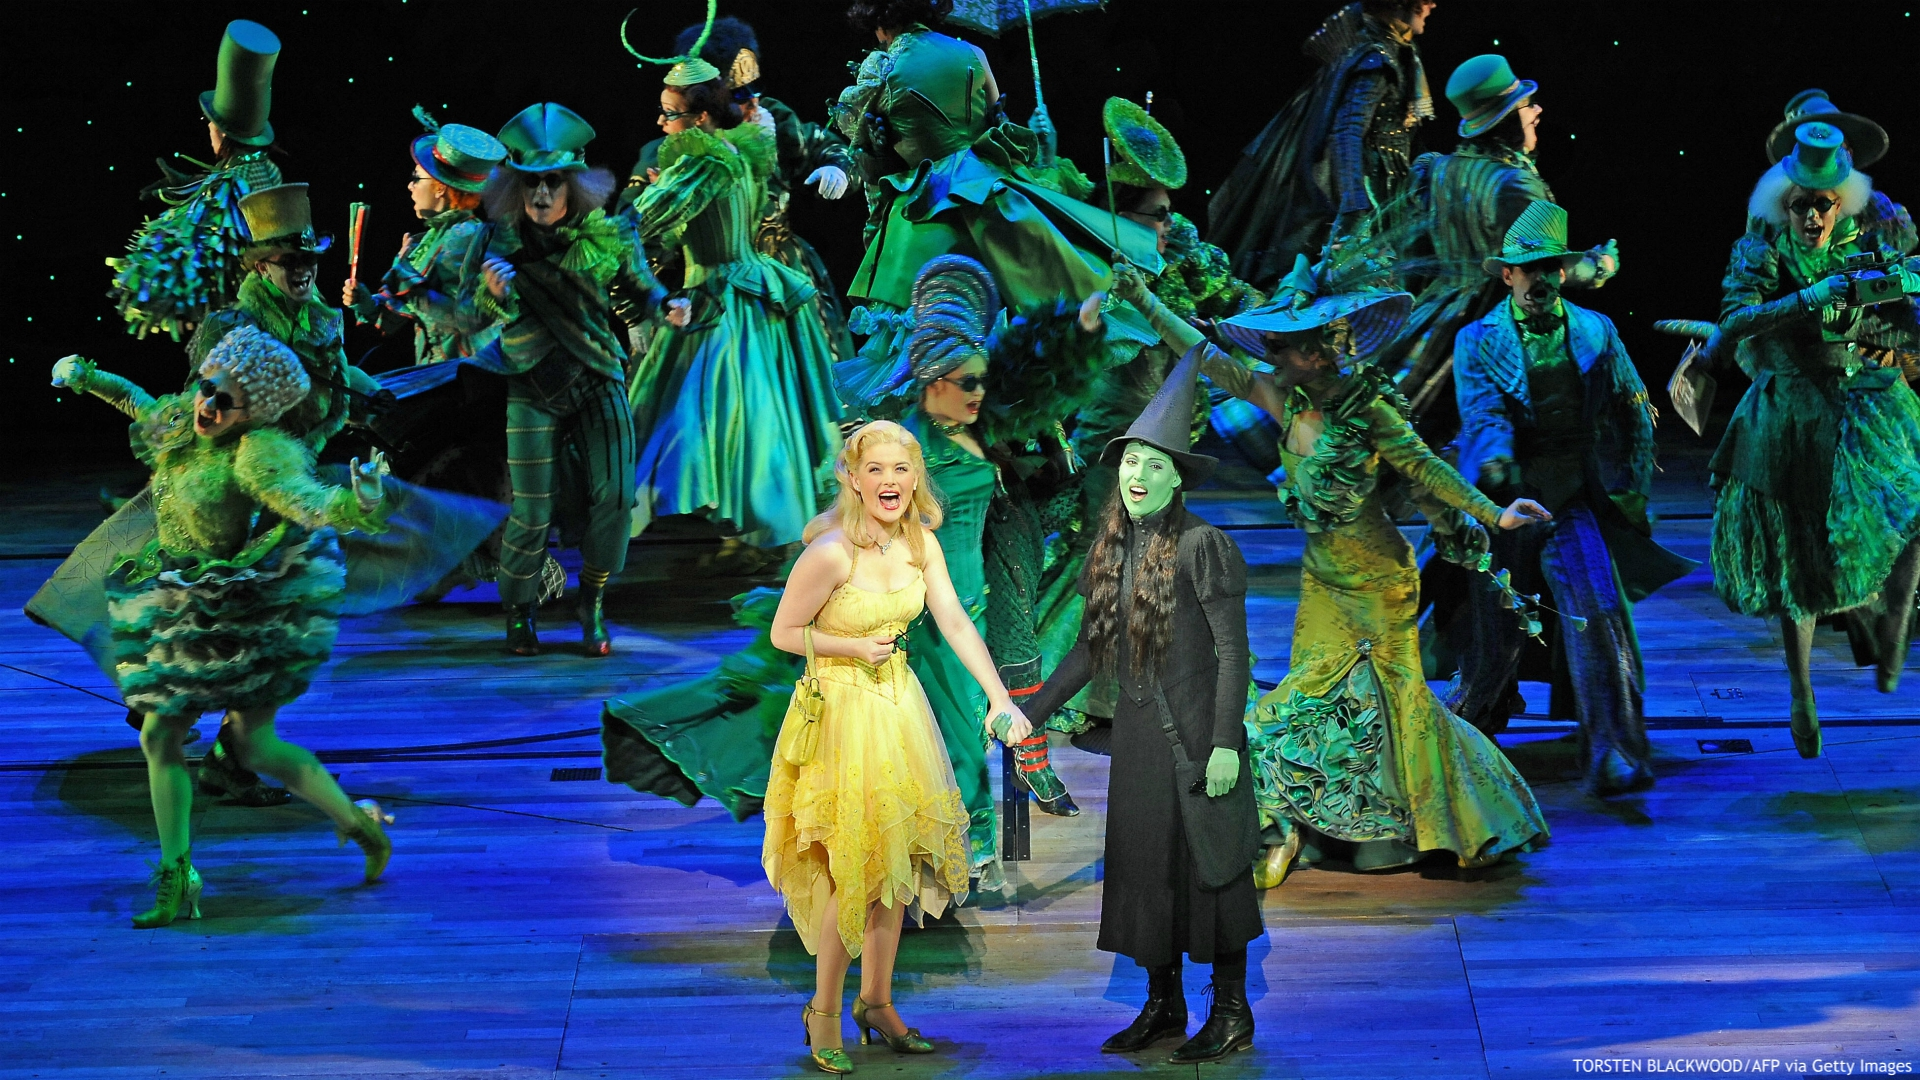 Glinda (C-L), played by Lucy Durack, and Elphaba (C-R), played by Amanda Harrison, perform in the highly acclaimed Broadway musical 'Wicked' during the preview in Sydney on September 10, 2009. 'Wicked', seen by over 20 million people worldwide, will open in Sydney on September 12. AFP PHOTO/Torsten BLACKWOOD (Photo credit should read TORSTEN BLACKWOOD/AFP via Getty Images)